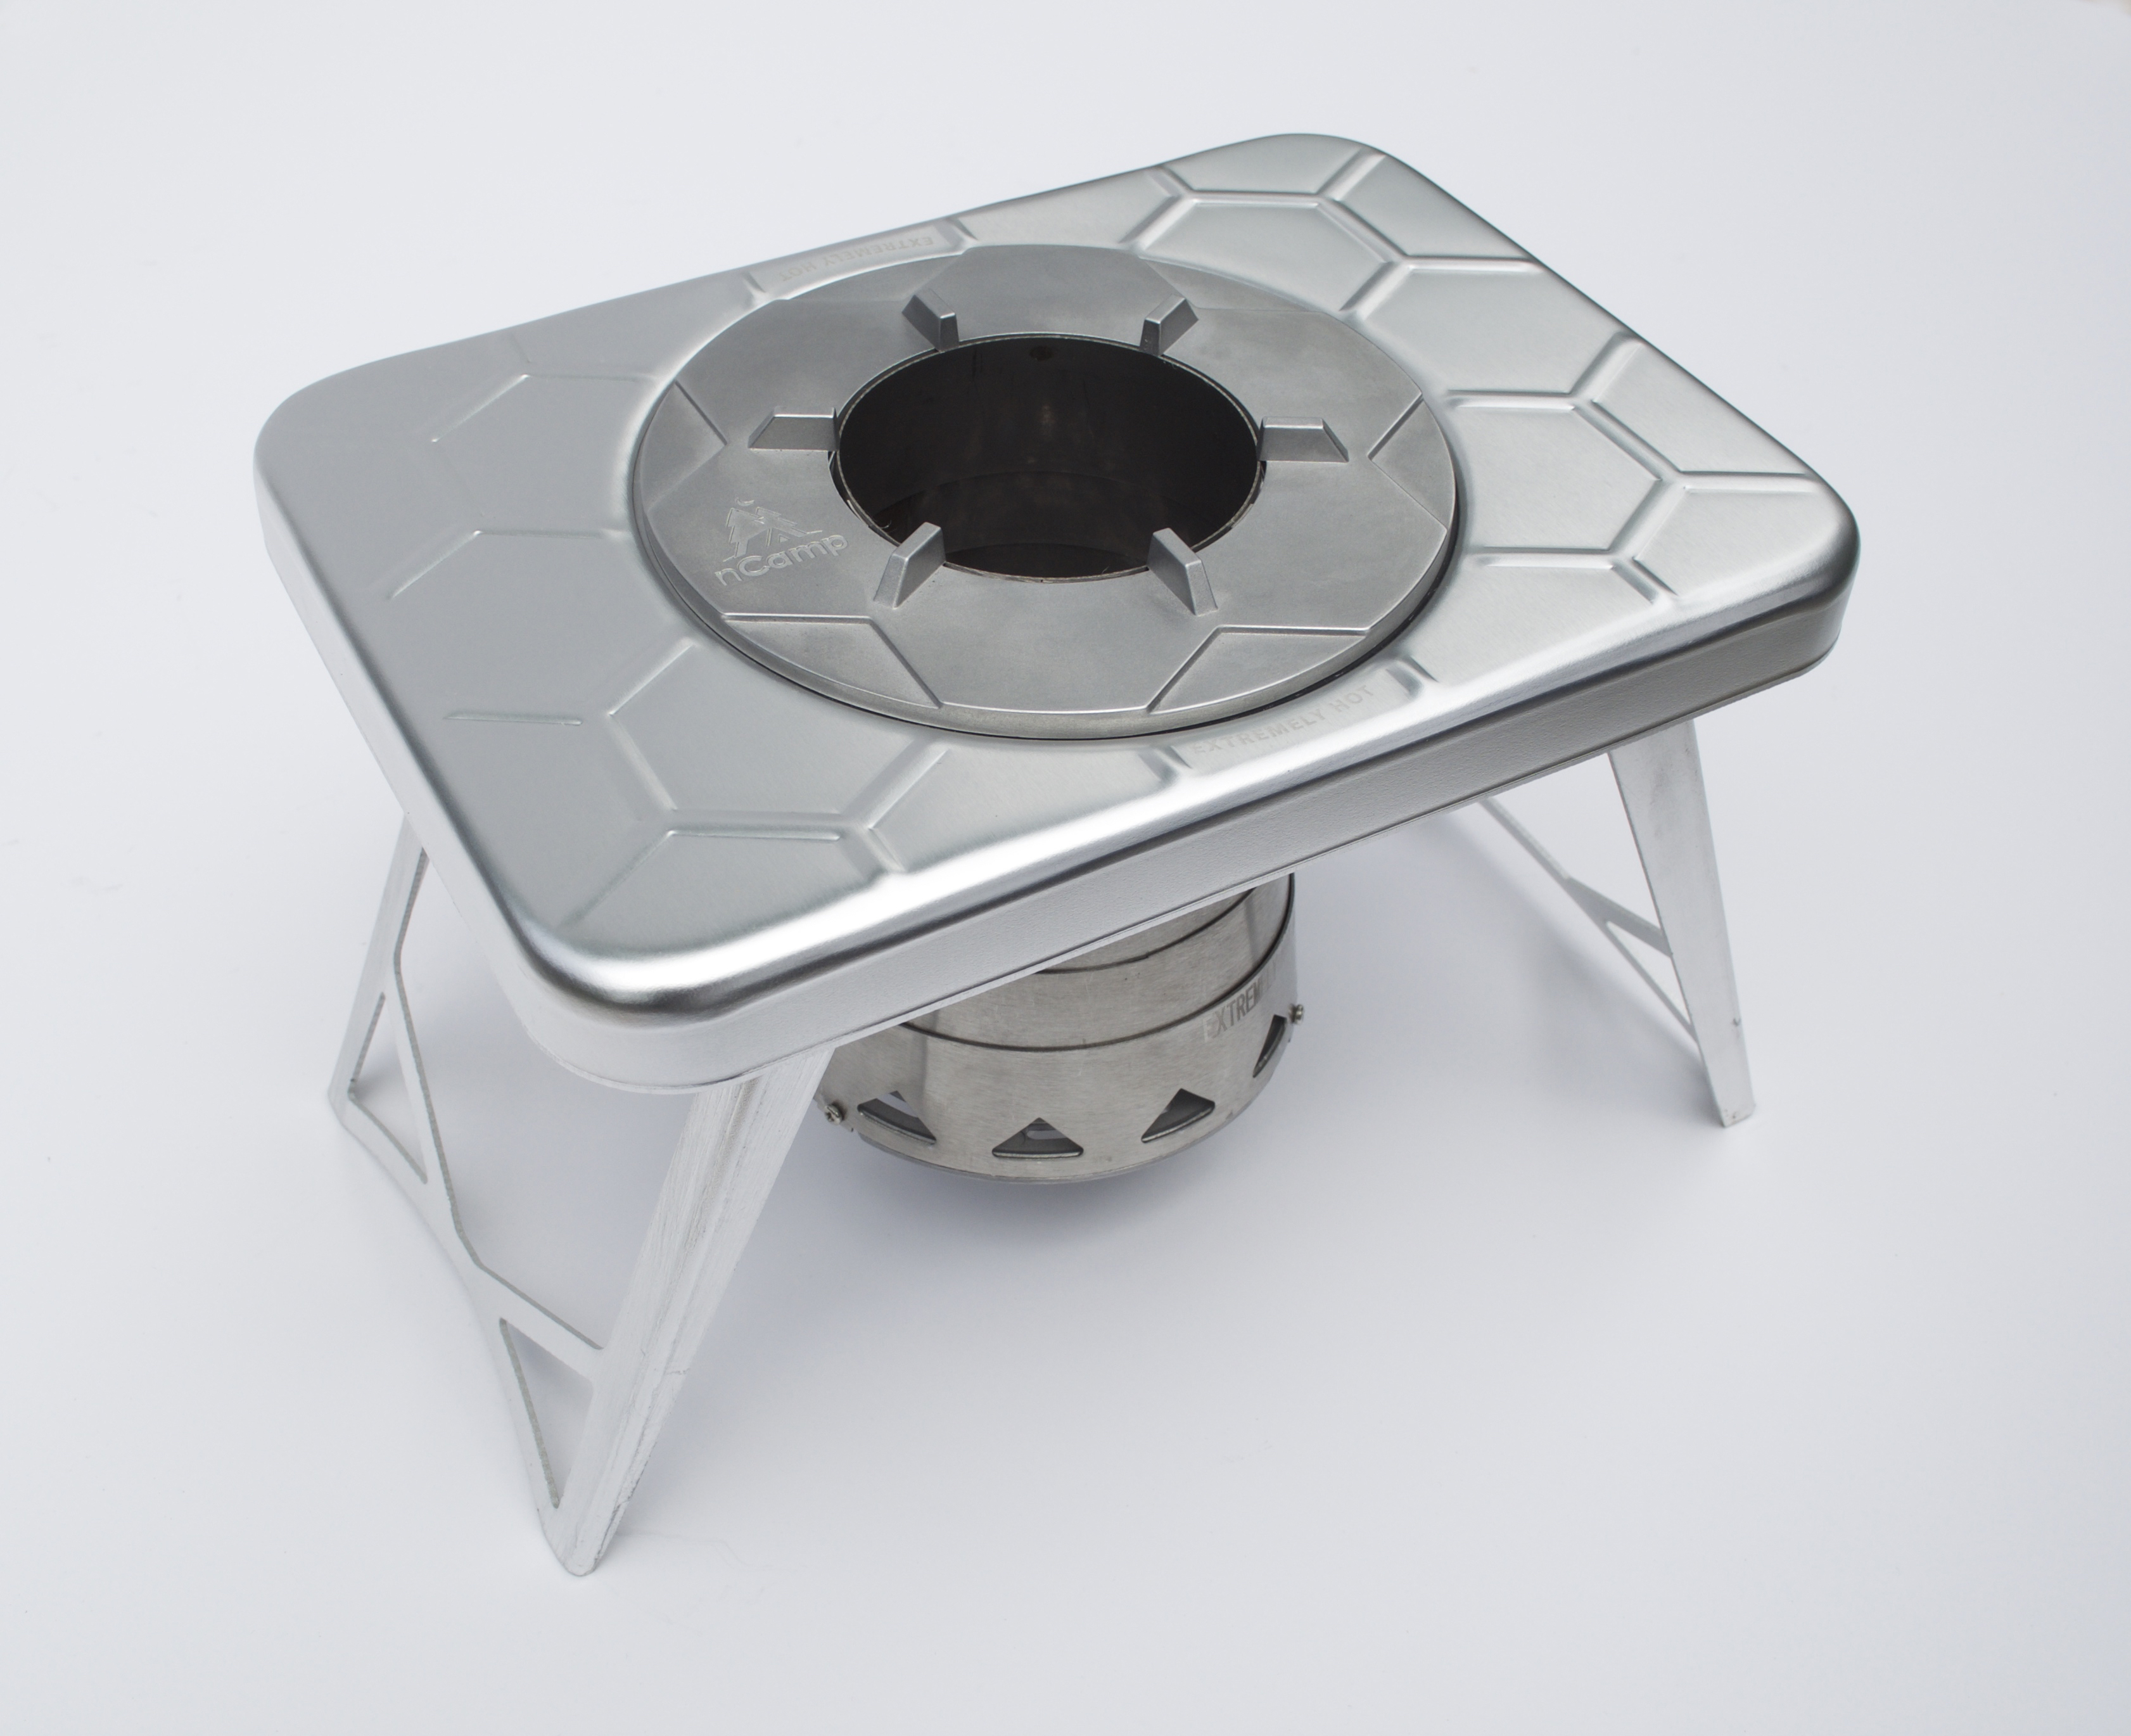 nCamp Launches Compact Wood-Burning Camp Stove | Business Wire